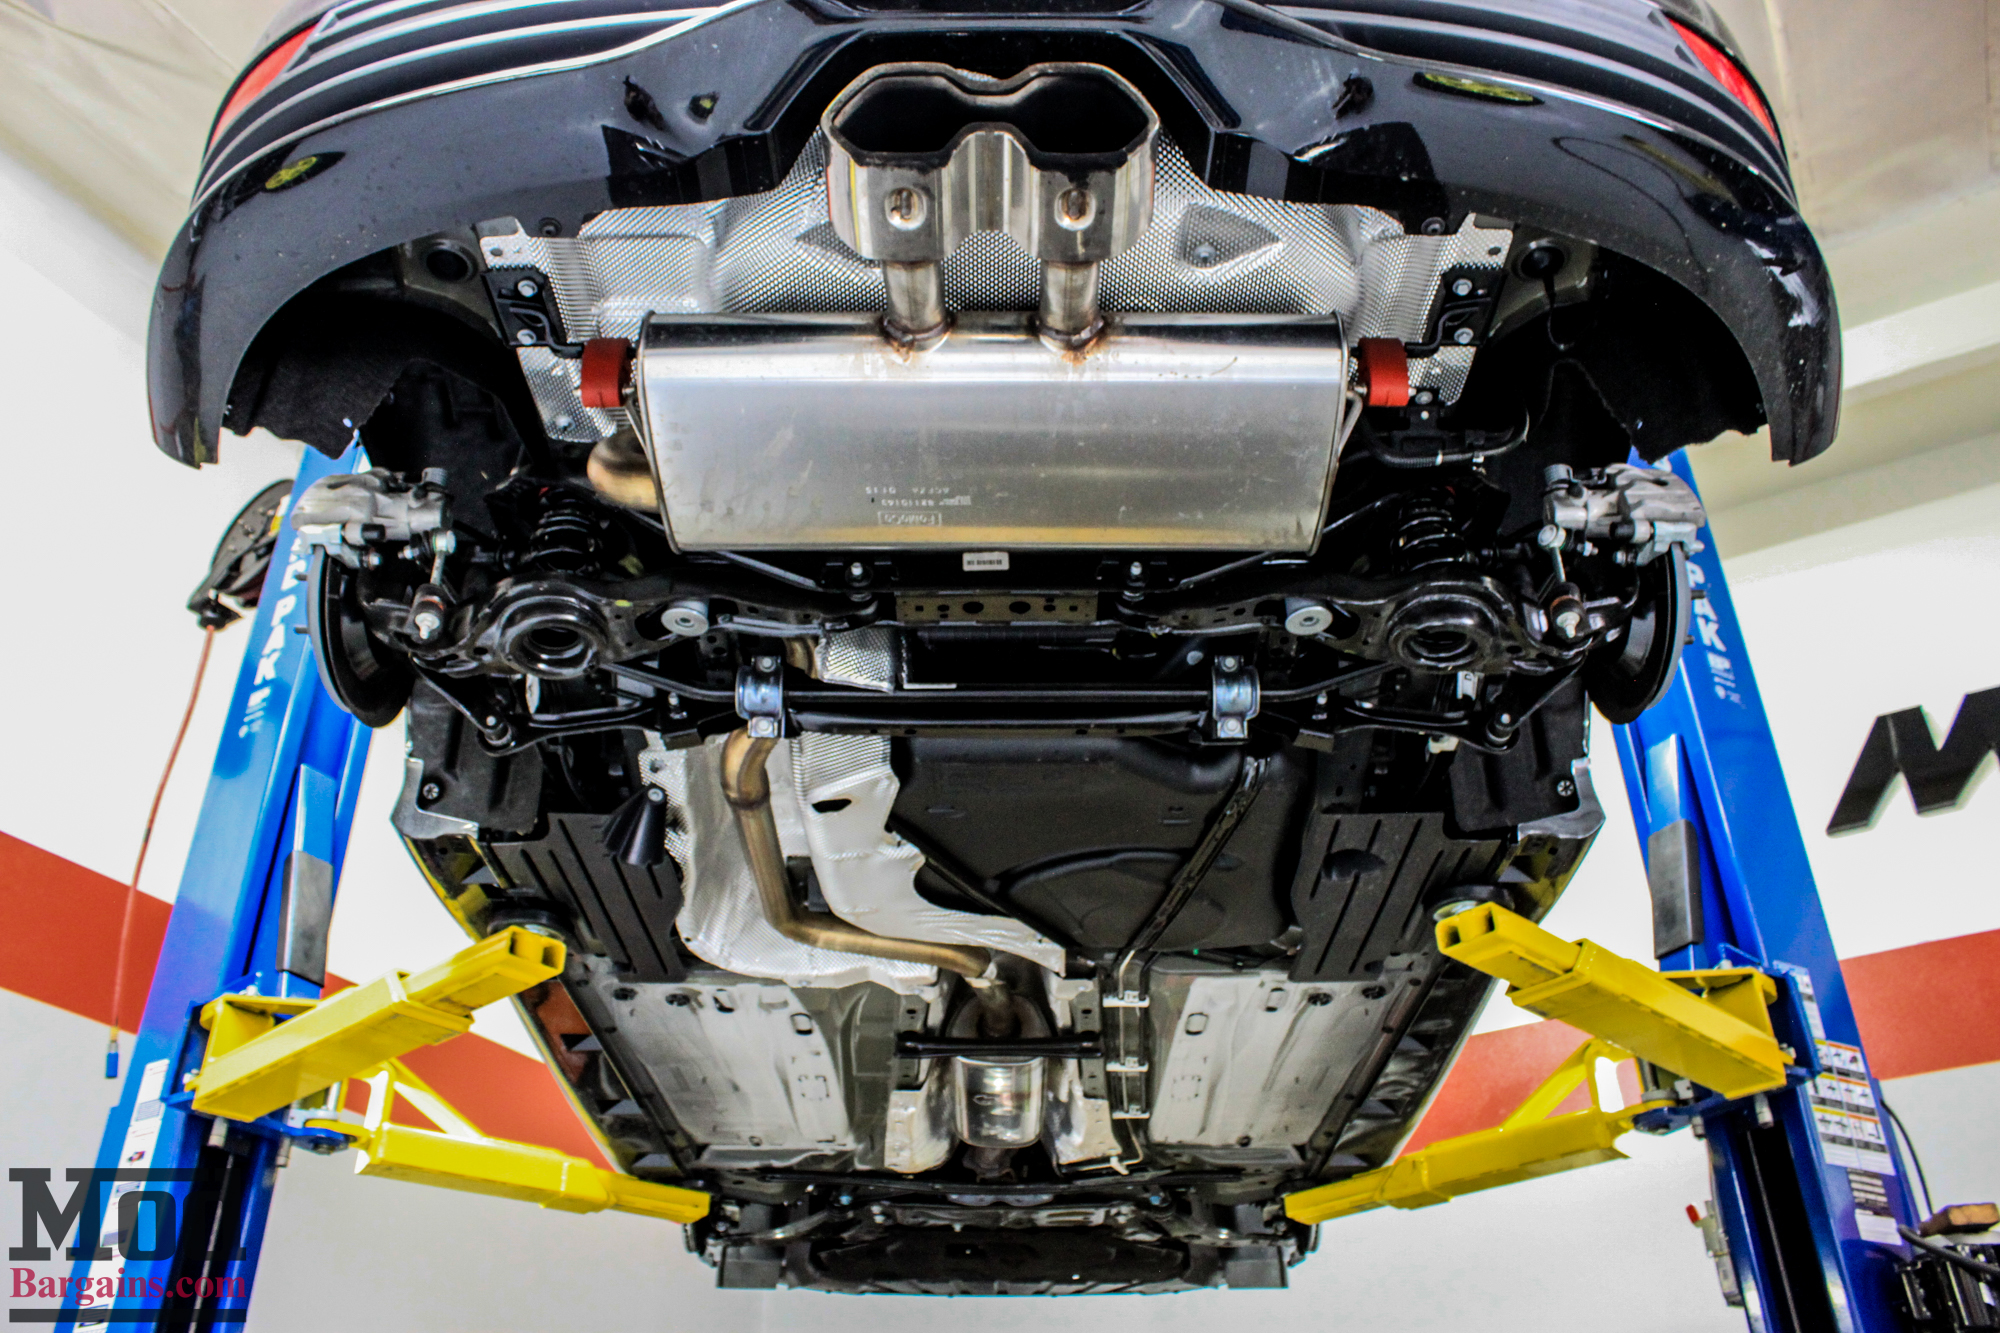 Focus St Exhaust 2019 2020 New Car Price And Reviews Honda Prelude Blaster Coil Wiring Diagram Mp275 Ford Cat Back By Milltek Install